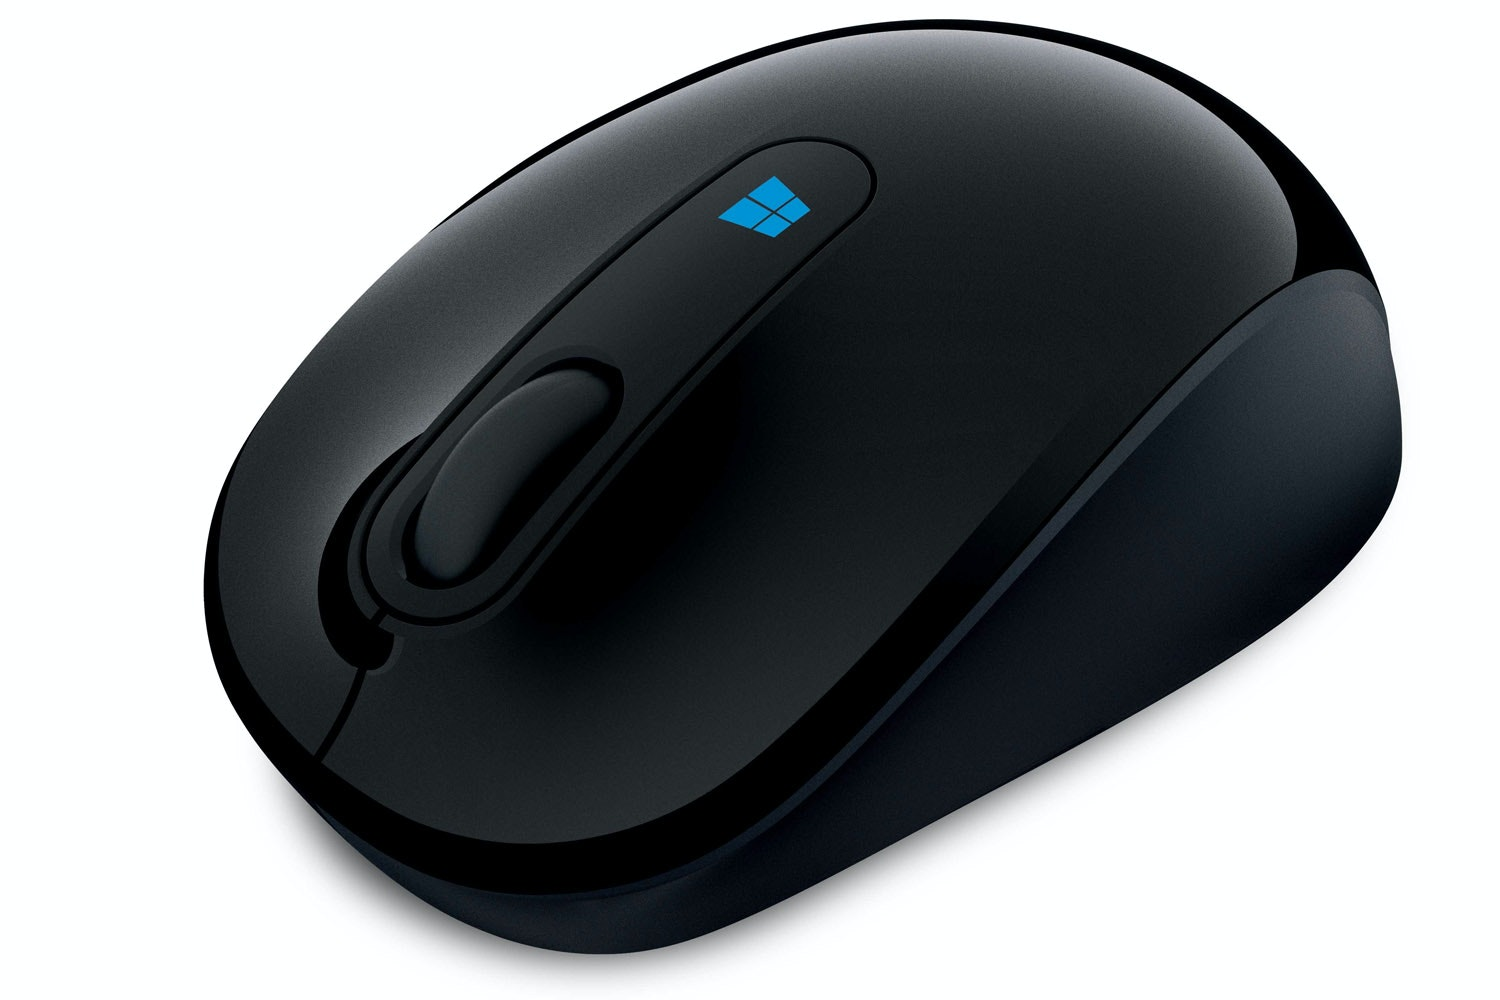 Microsoft Sculpt Mouse | Black